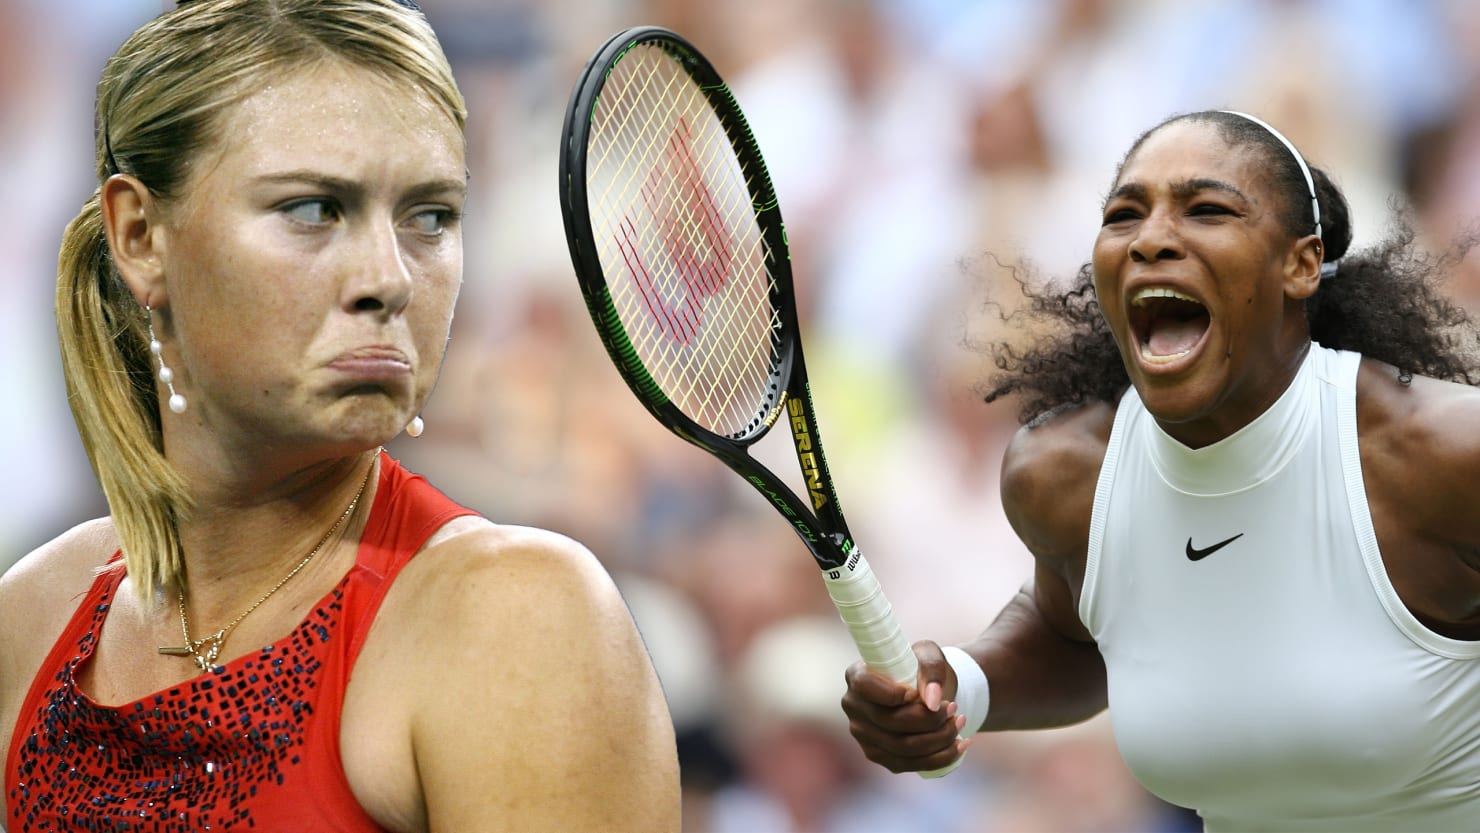 Maria Sharapova s Vile Racially Tinged Treatment of Serena Williams